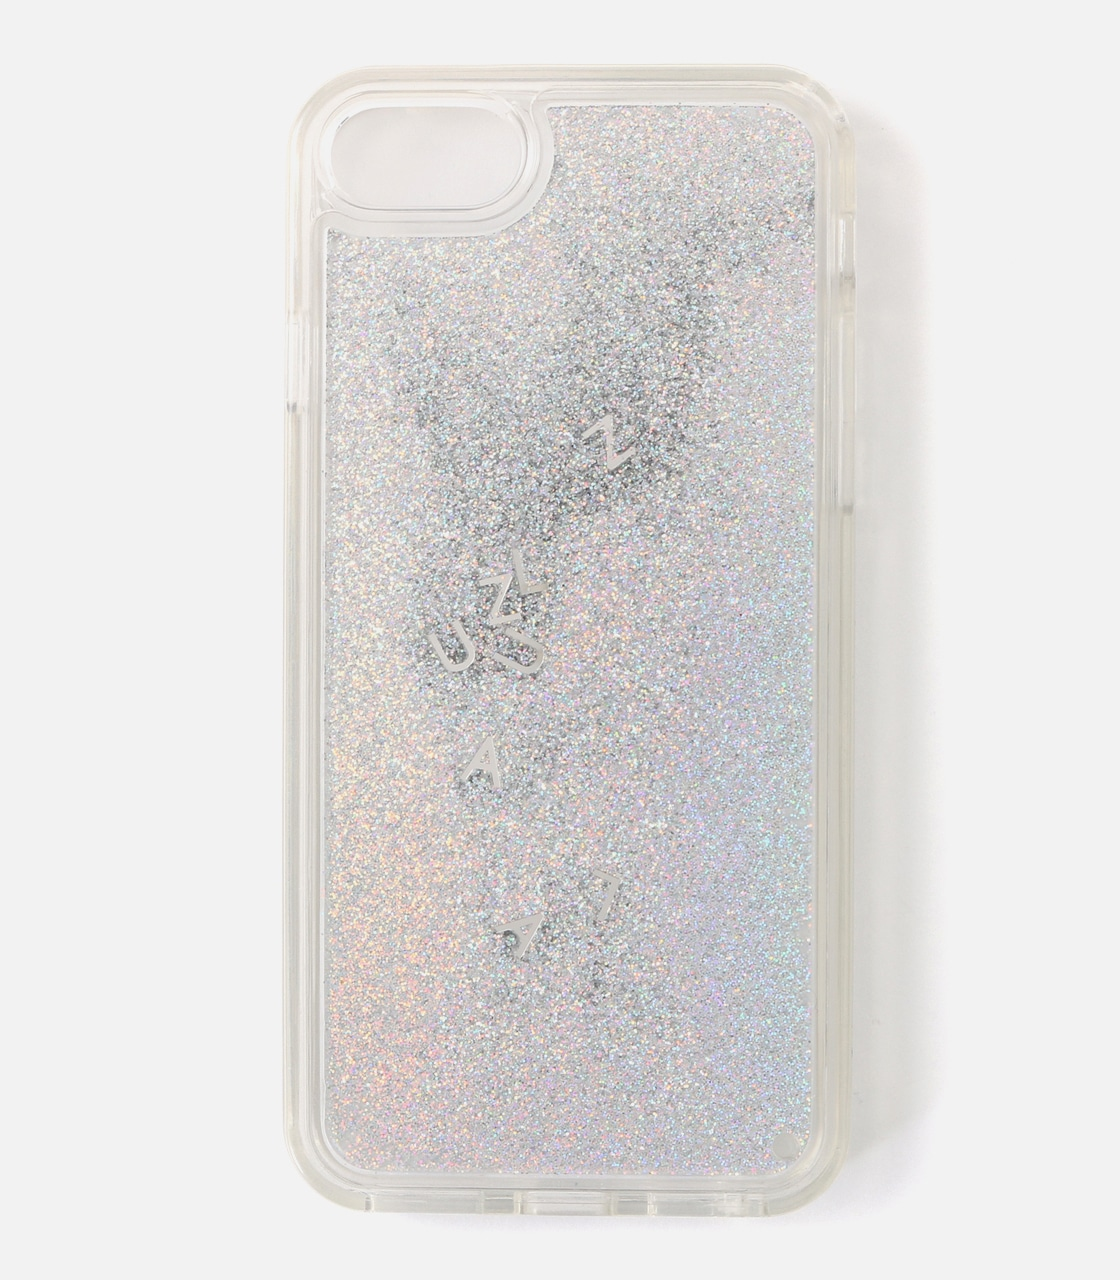 【AZUL BY MOUSSY】GLITTER SMARTPHONE CASE 詳細画像 SLV 1